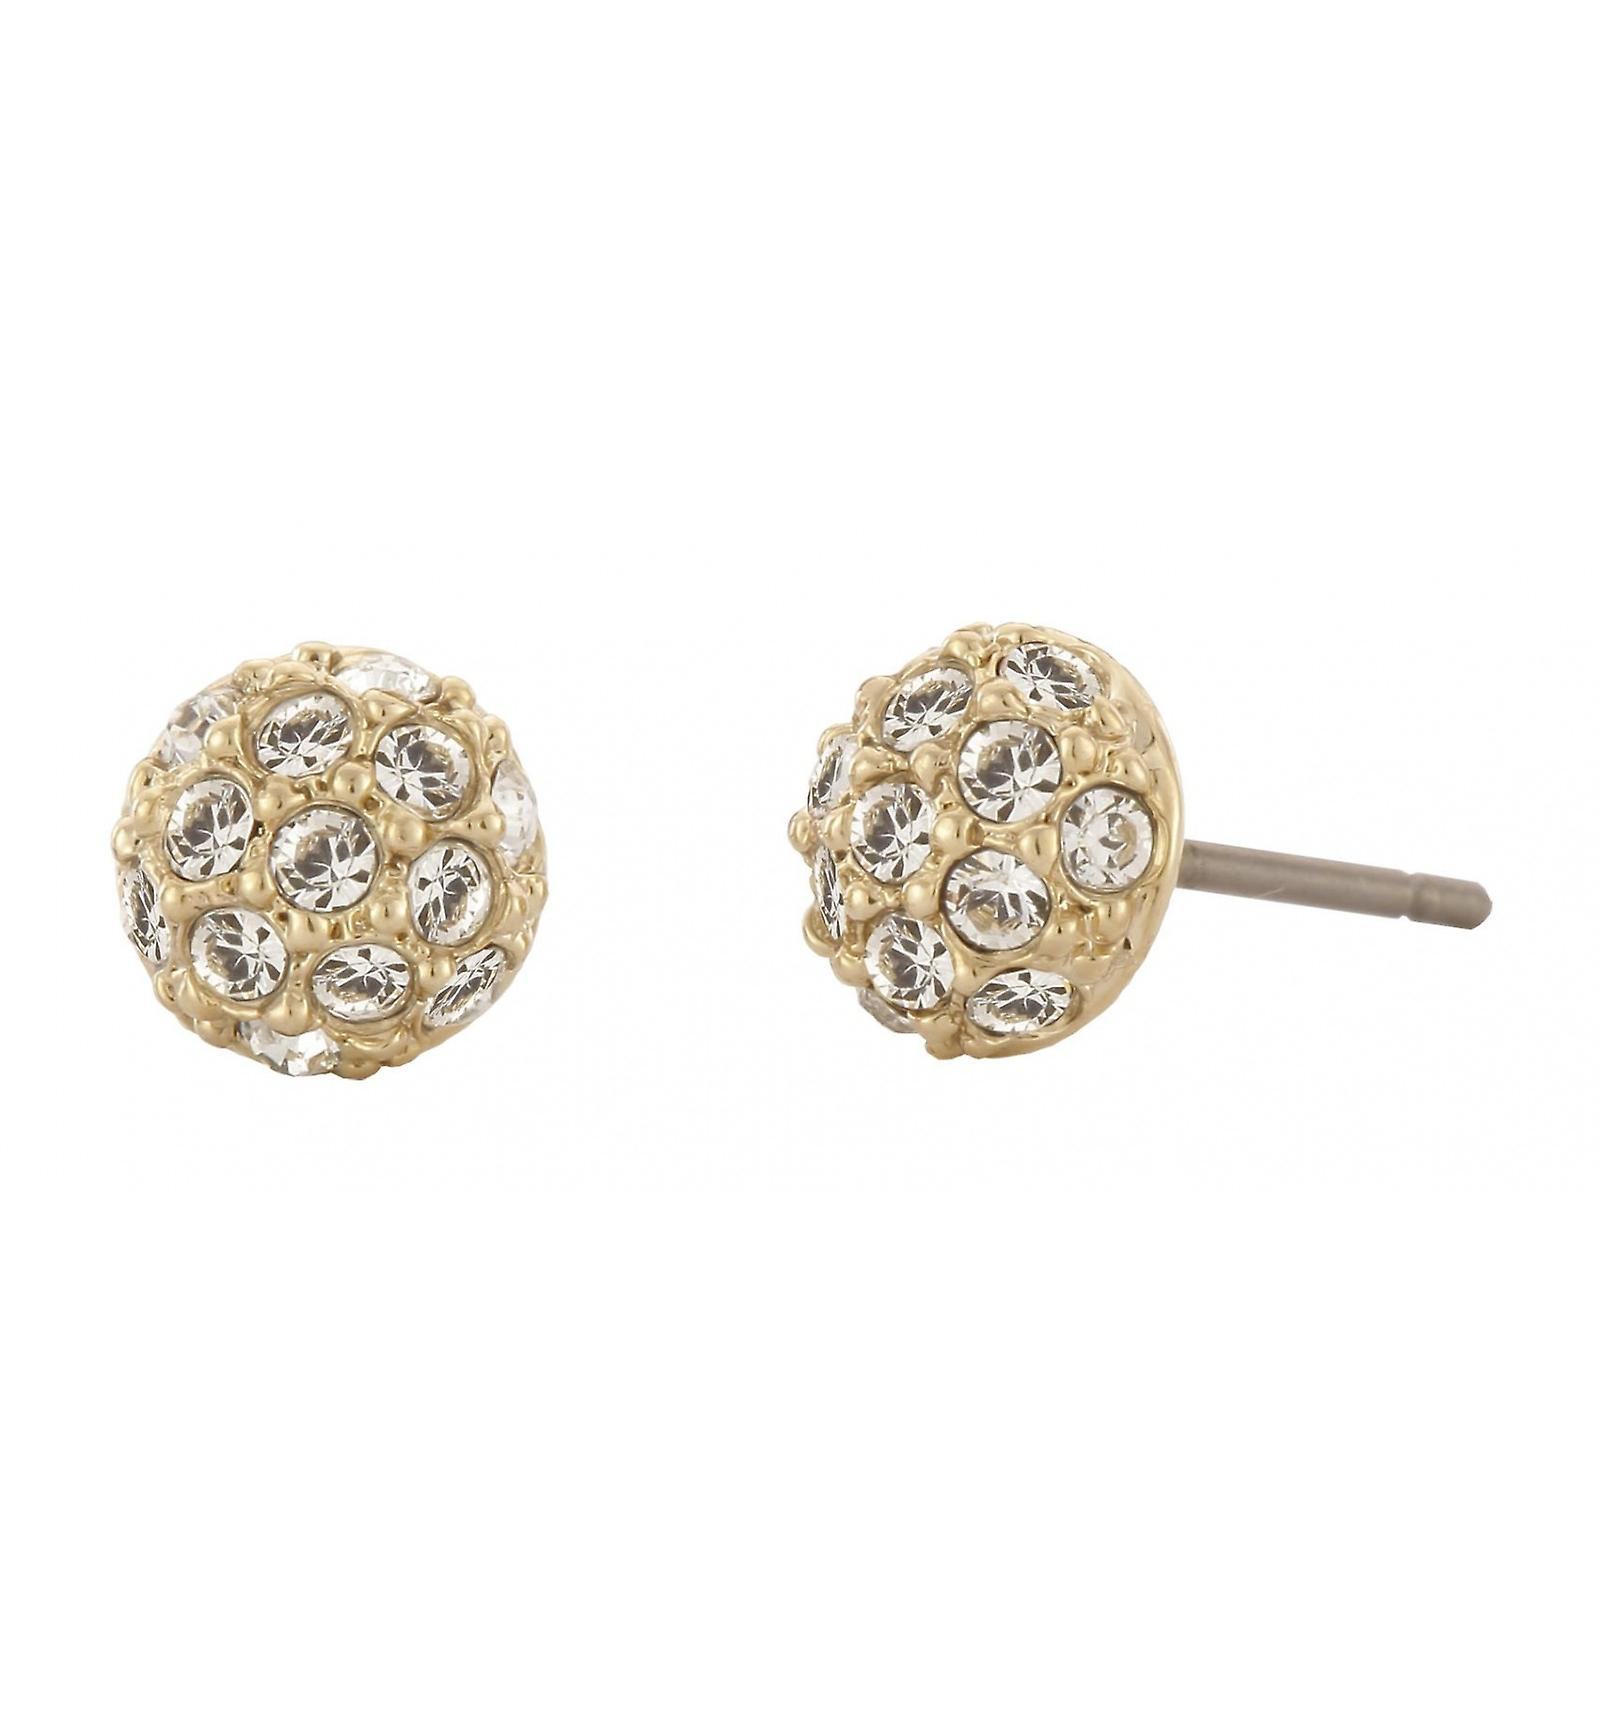 Traveller pierced earring - 22ct gold plated - Swarovski Crystals - 156141